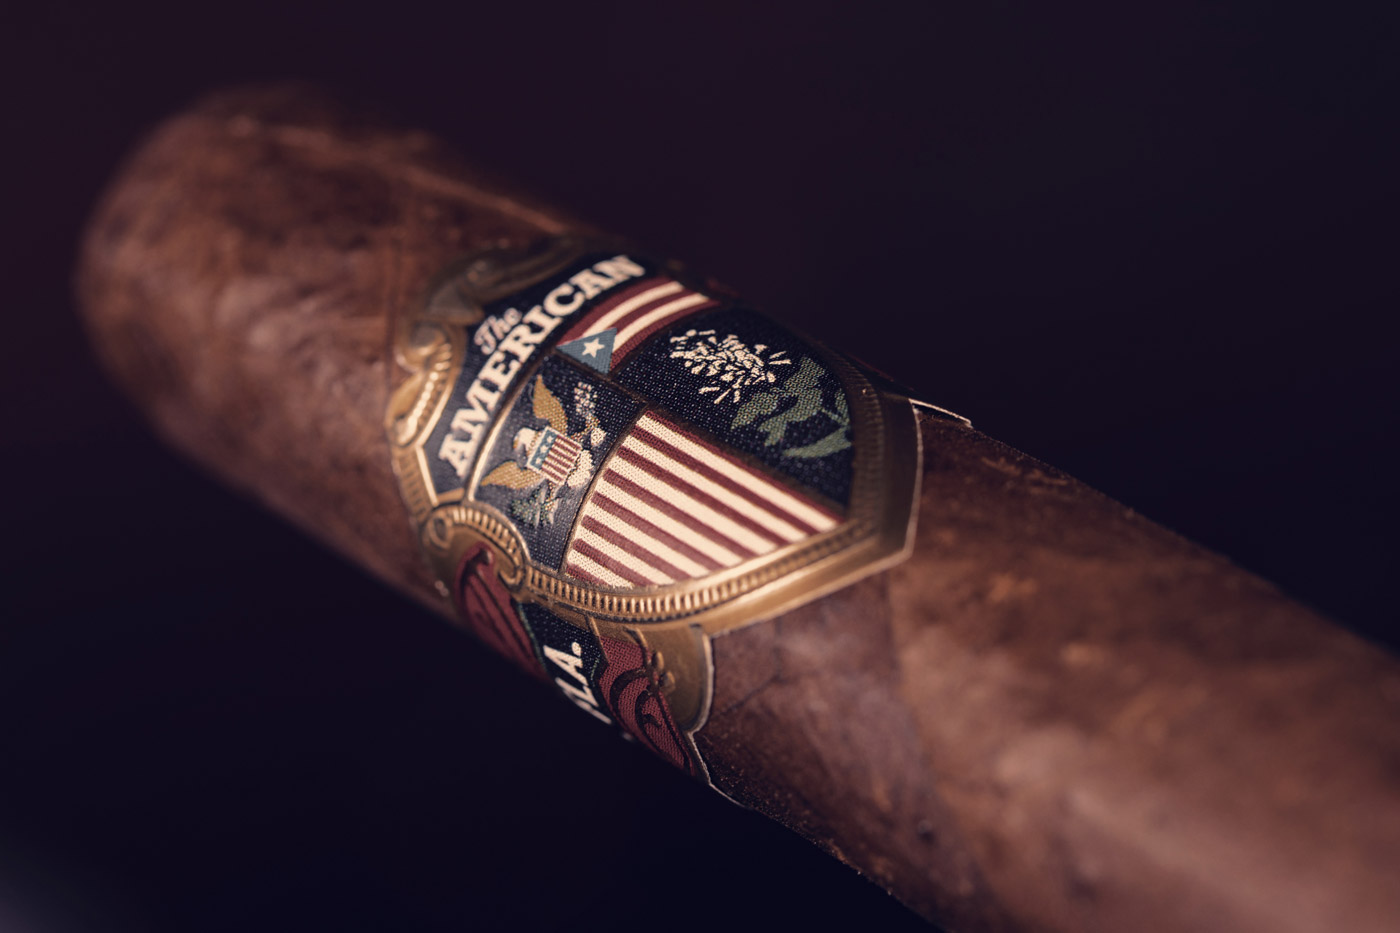 J.C. Newman The American Robusto cigar review